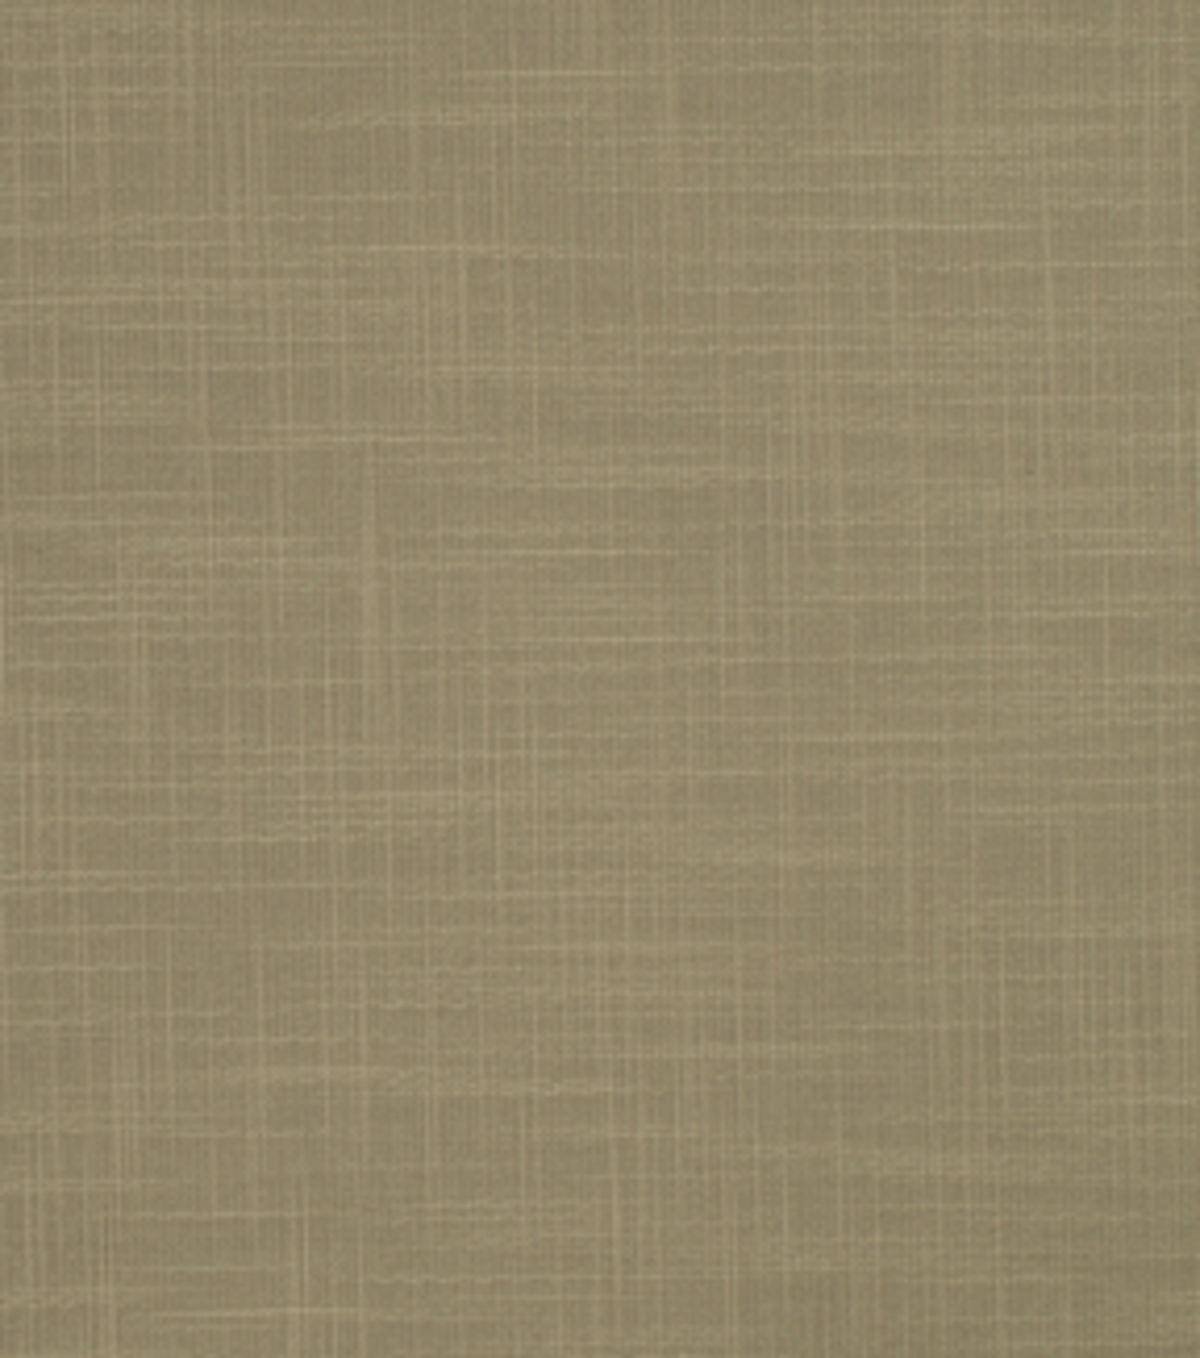 Home Decor 8\u0022x8\u0022 Fabric Swatch-Eaton Square Banderas Olive